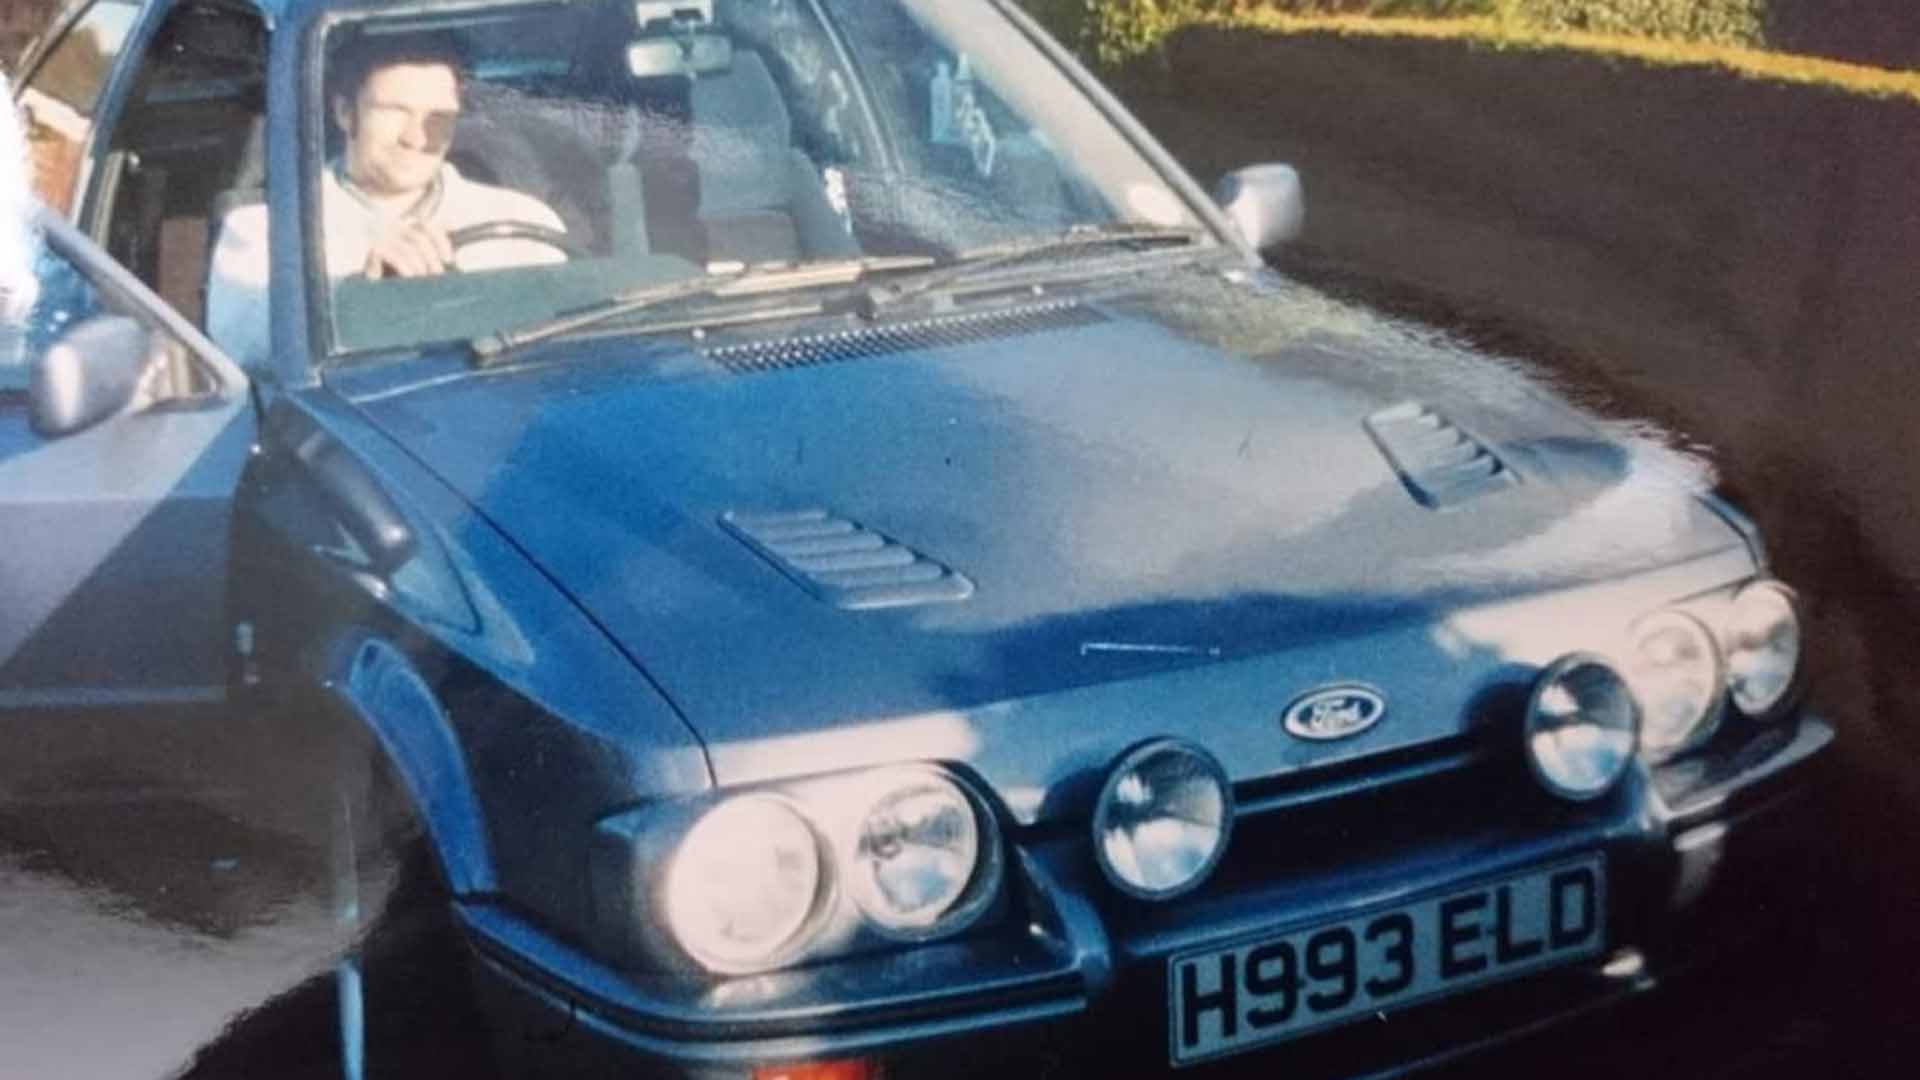 Chris Barker in his Ford Escort RS Turbo